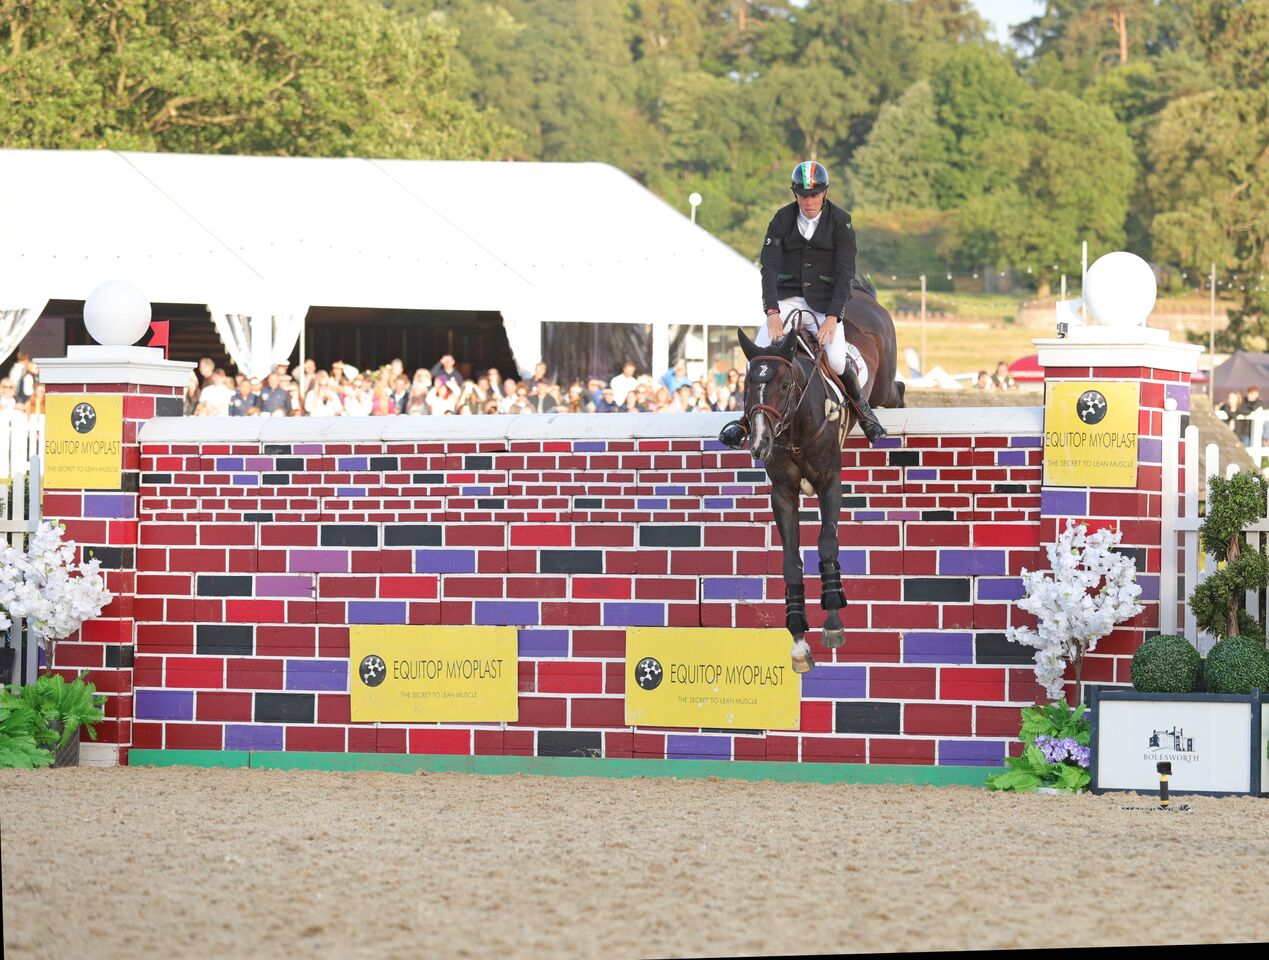 2018.06.19.99.99 Bolesworth CSI 4 Puissance Shane Breen & Acorad 3 Bolesworth.jpeg